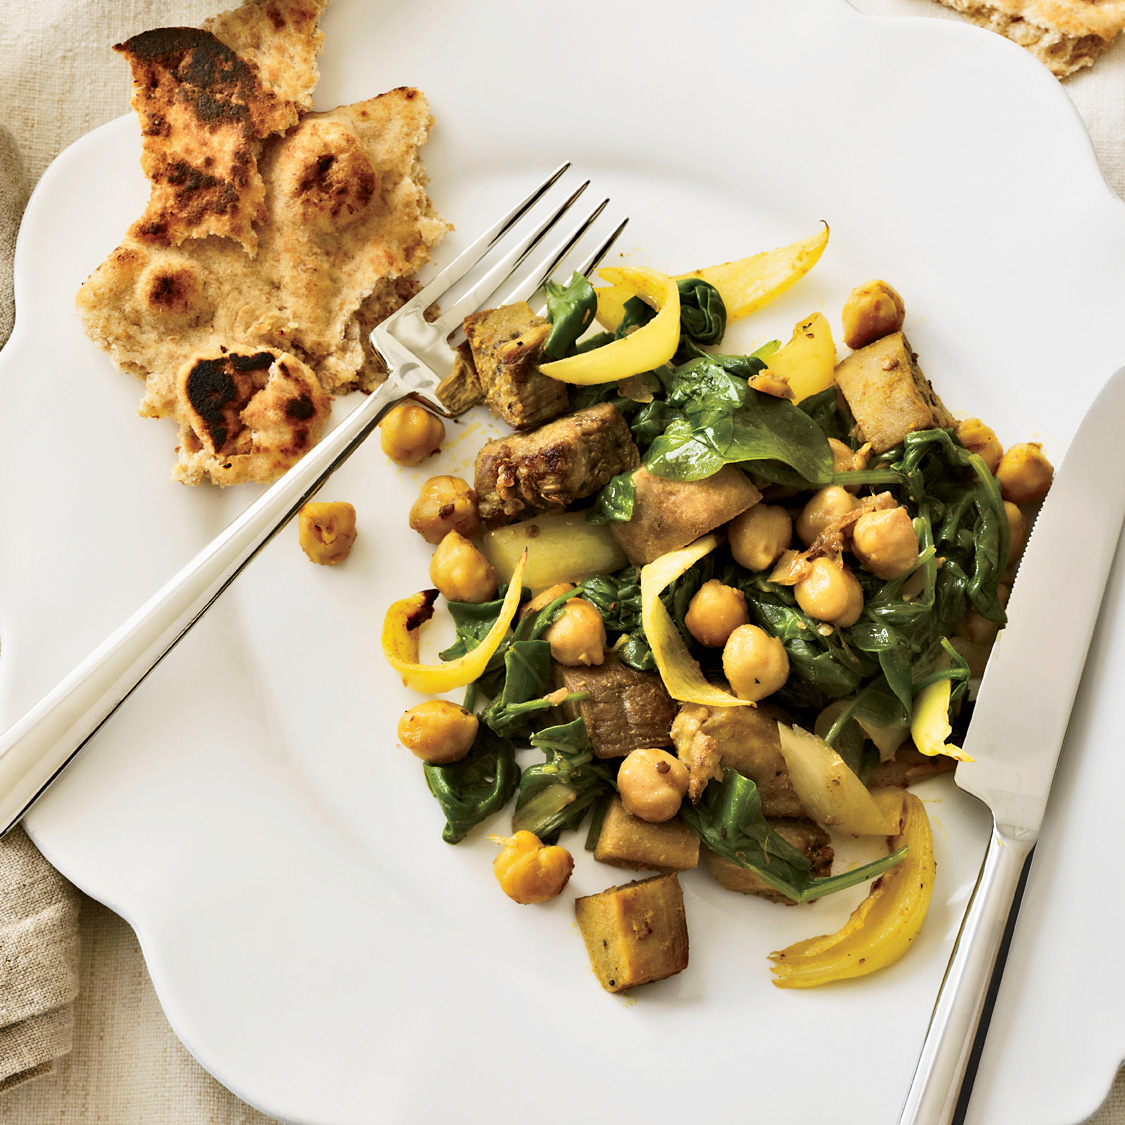 Curried Eggplant with Chickpeas and Spinach